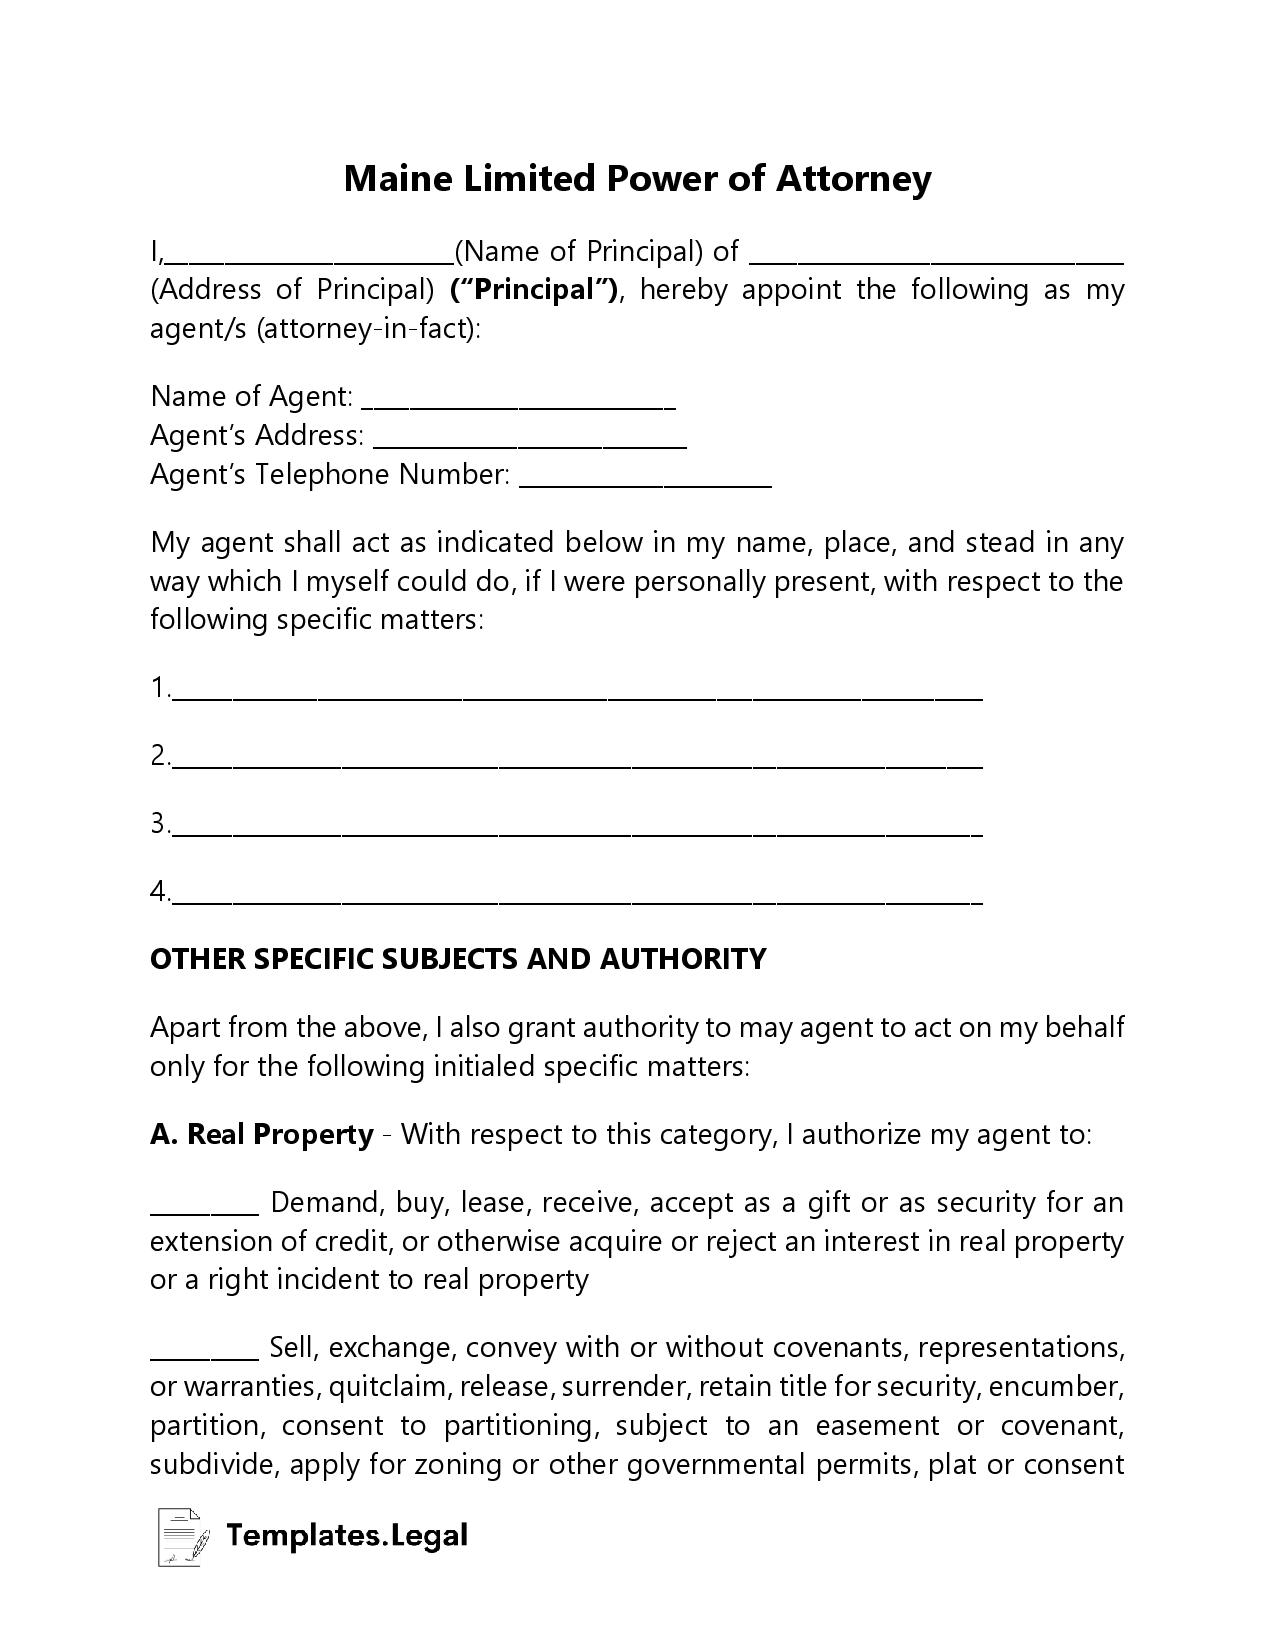 Maine Limited Power of Attorney - Templates.Legal